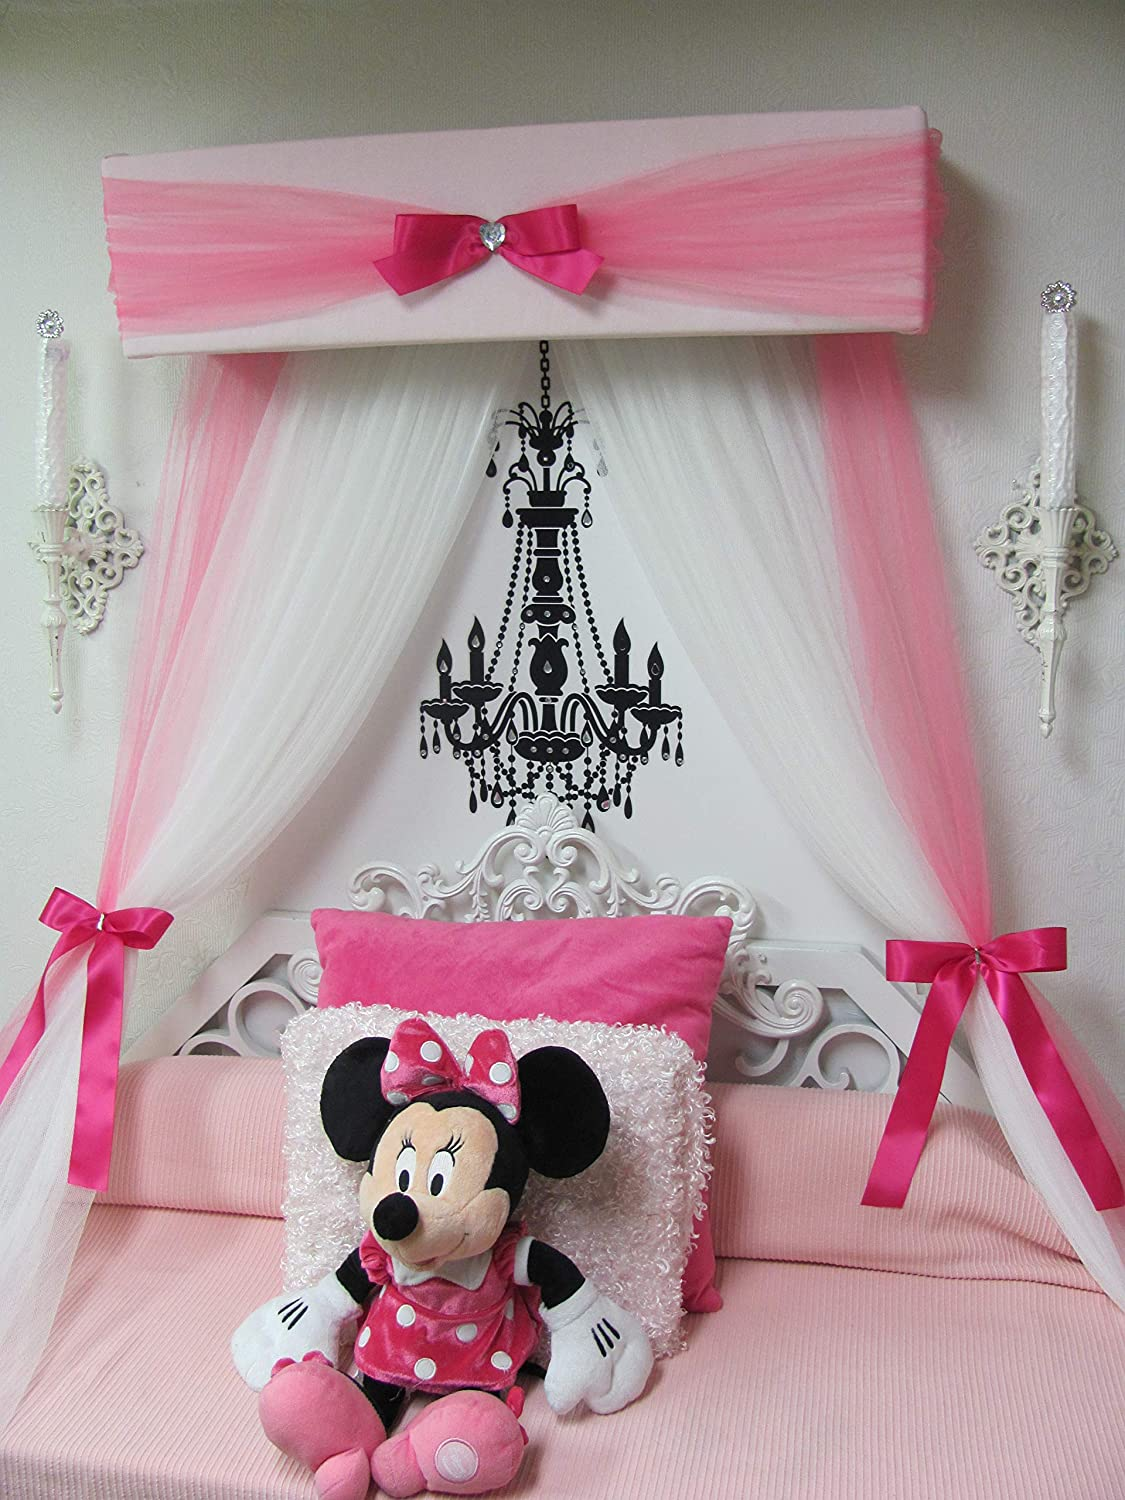 Amazon.com Princess Bed Crib canopy Nursery cornice teester FULL Twin Queen 30 inch White Padded Pink Tulle Tiara Crown Silver or GOLD Sale Bedroom Decor ... & Amazon.com: Princess Bed Crib canopy Nursery cornice teester FULL ...